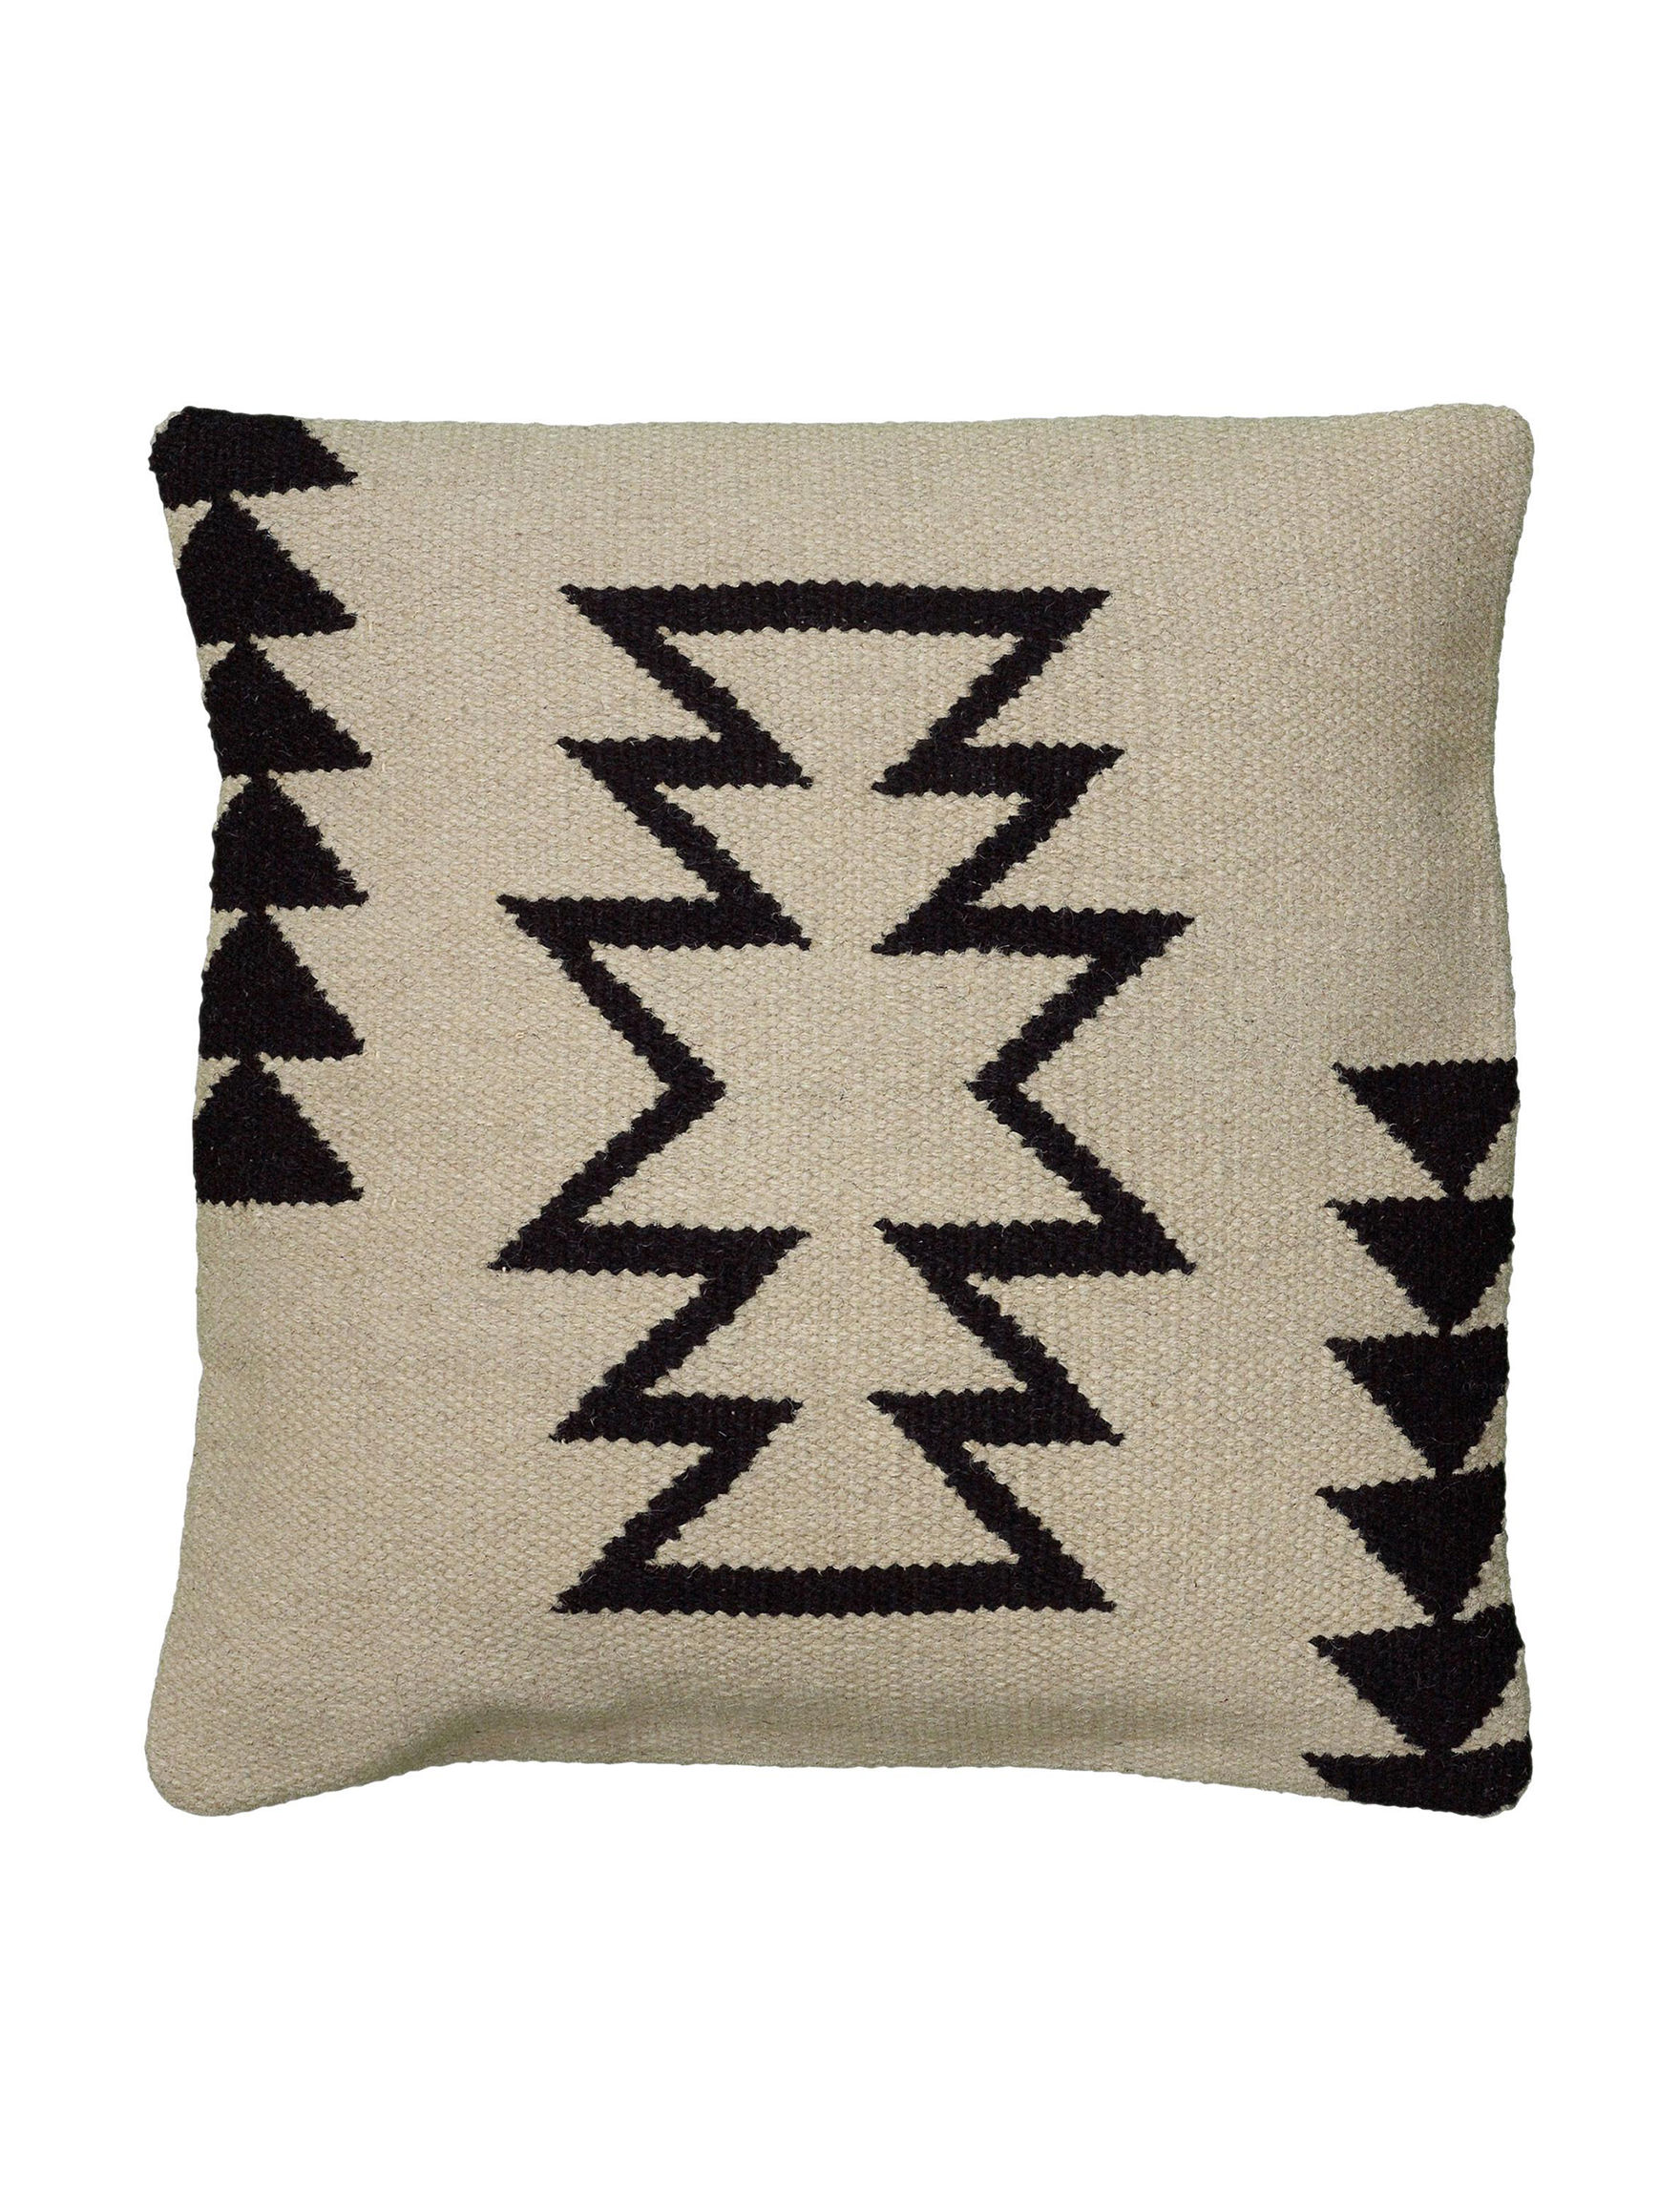 Rizzy Home Ivory Decorative Pillows